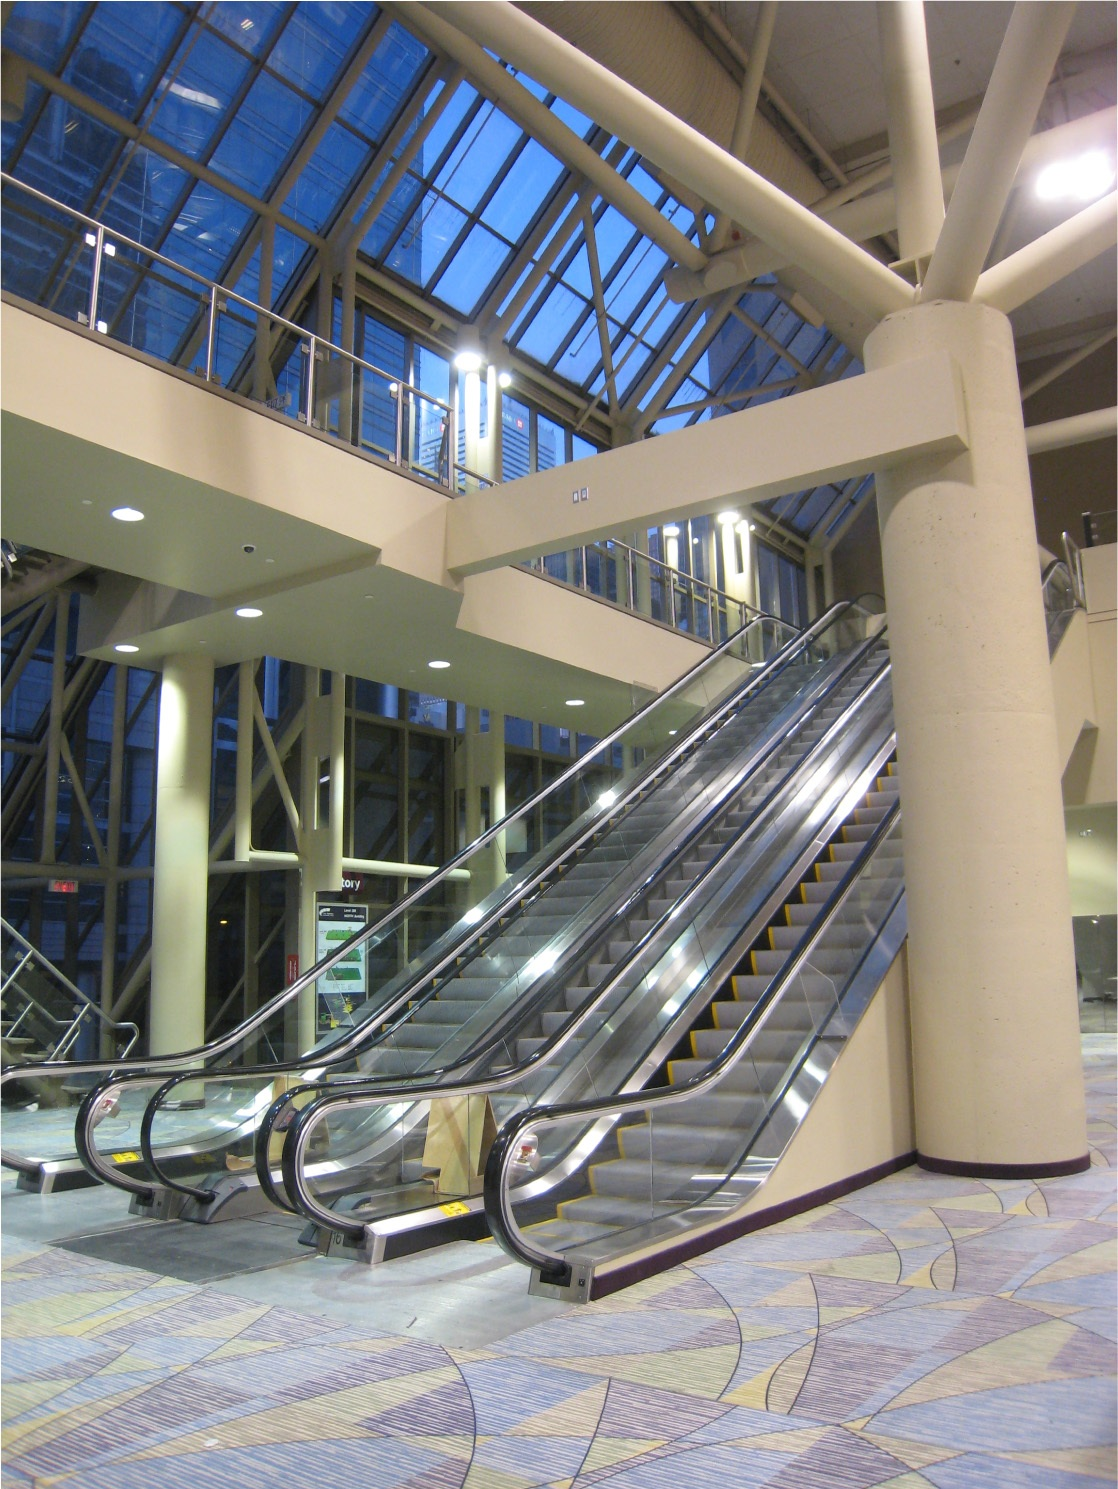 03_New_Triple_Escalator_photo